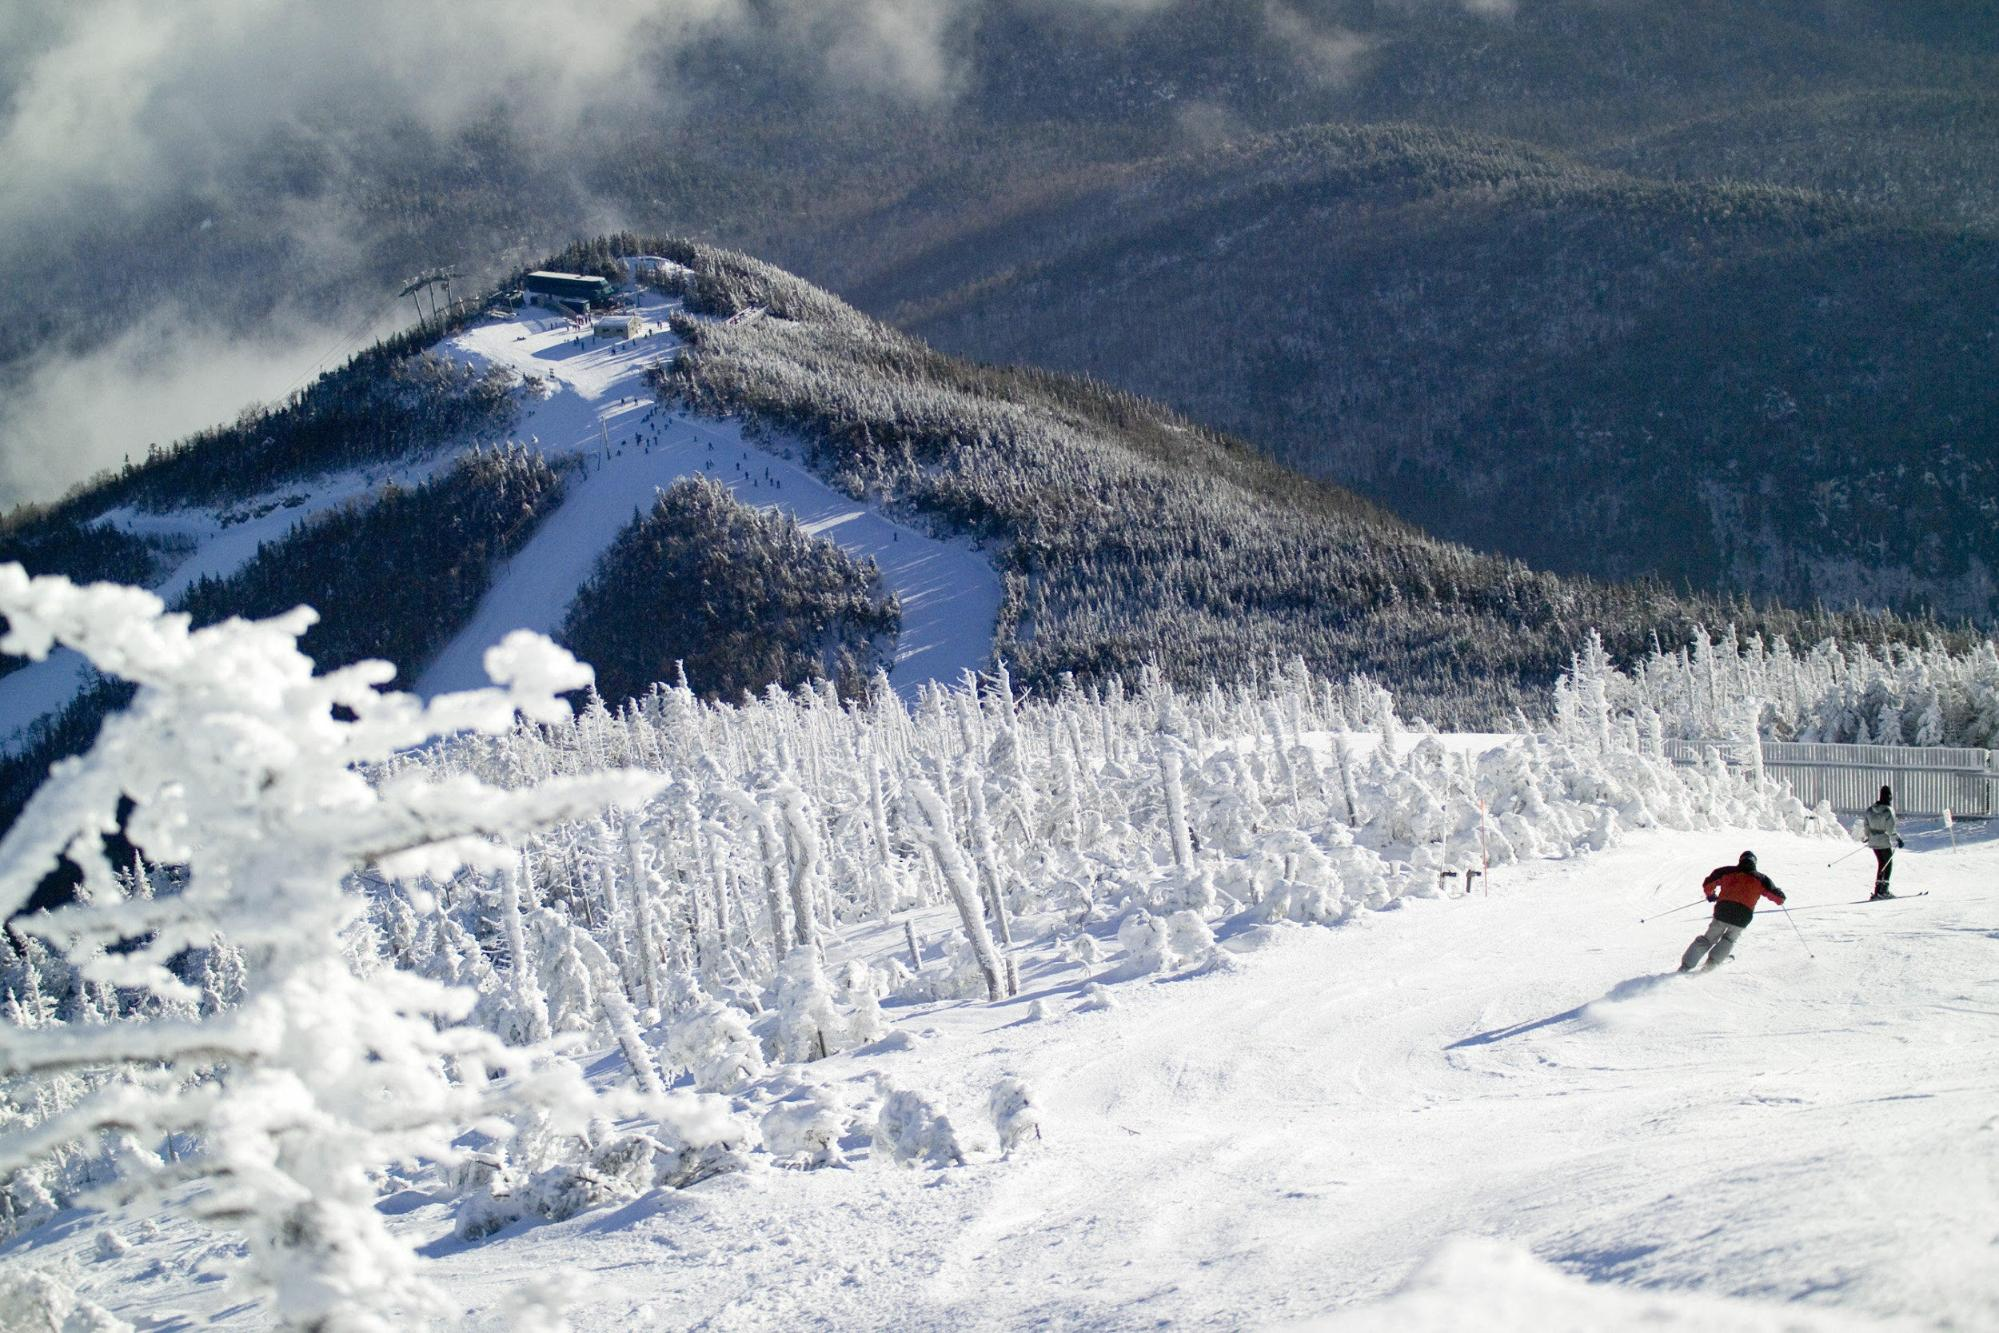 Skiing in Whiteface Mountain